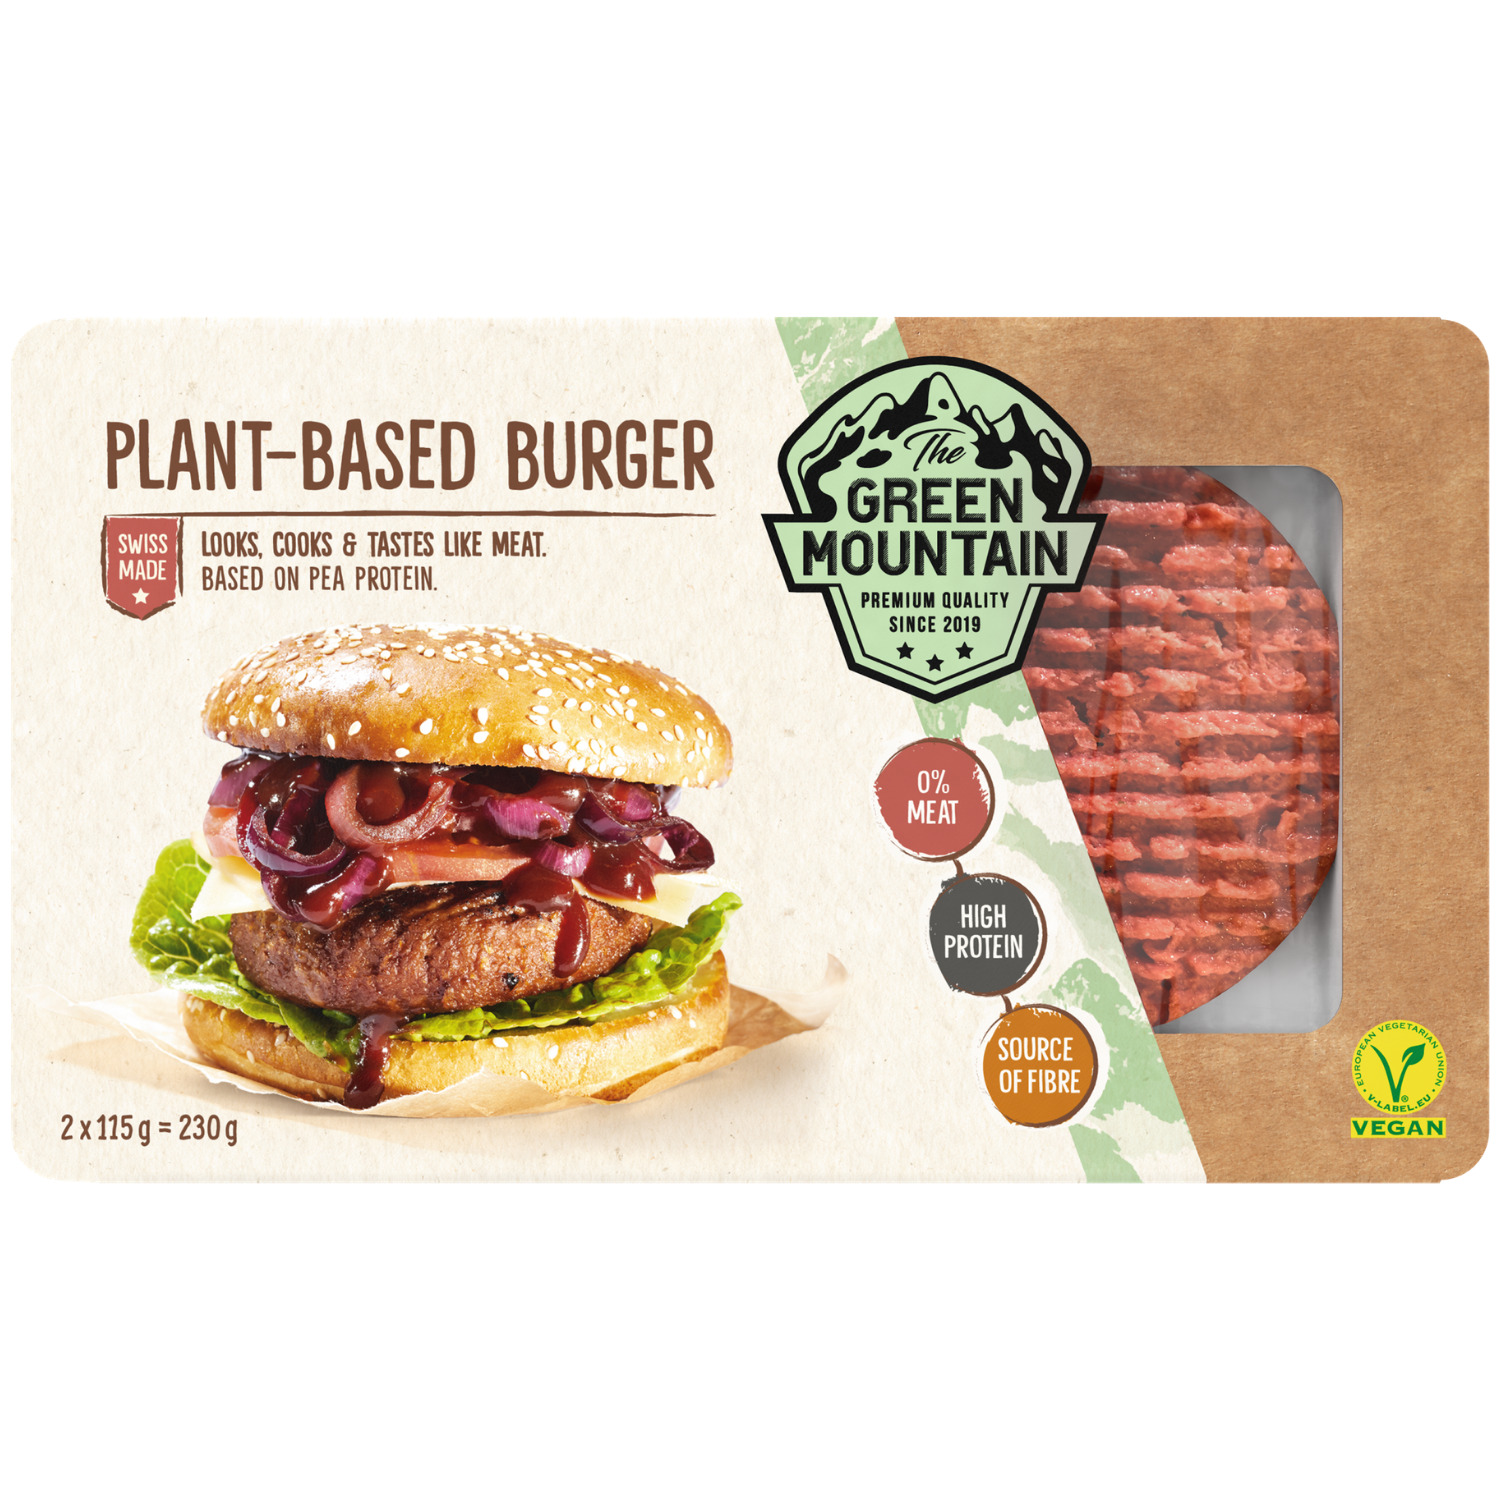 The Green Mountain Plant-Based Burger